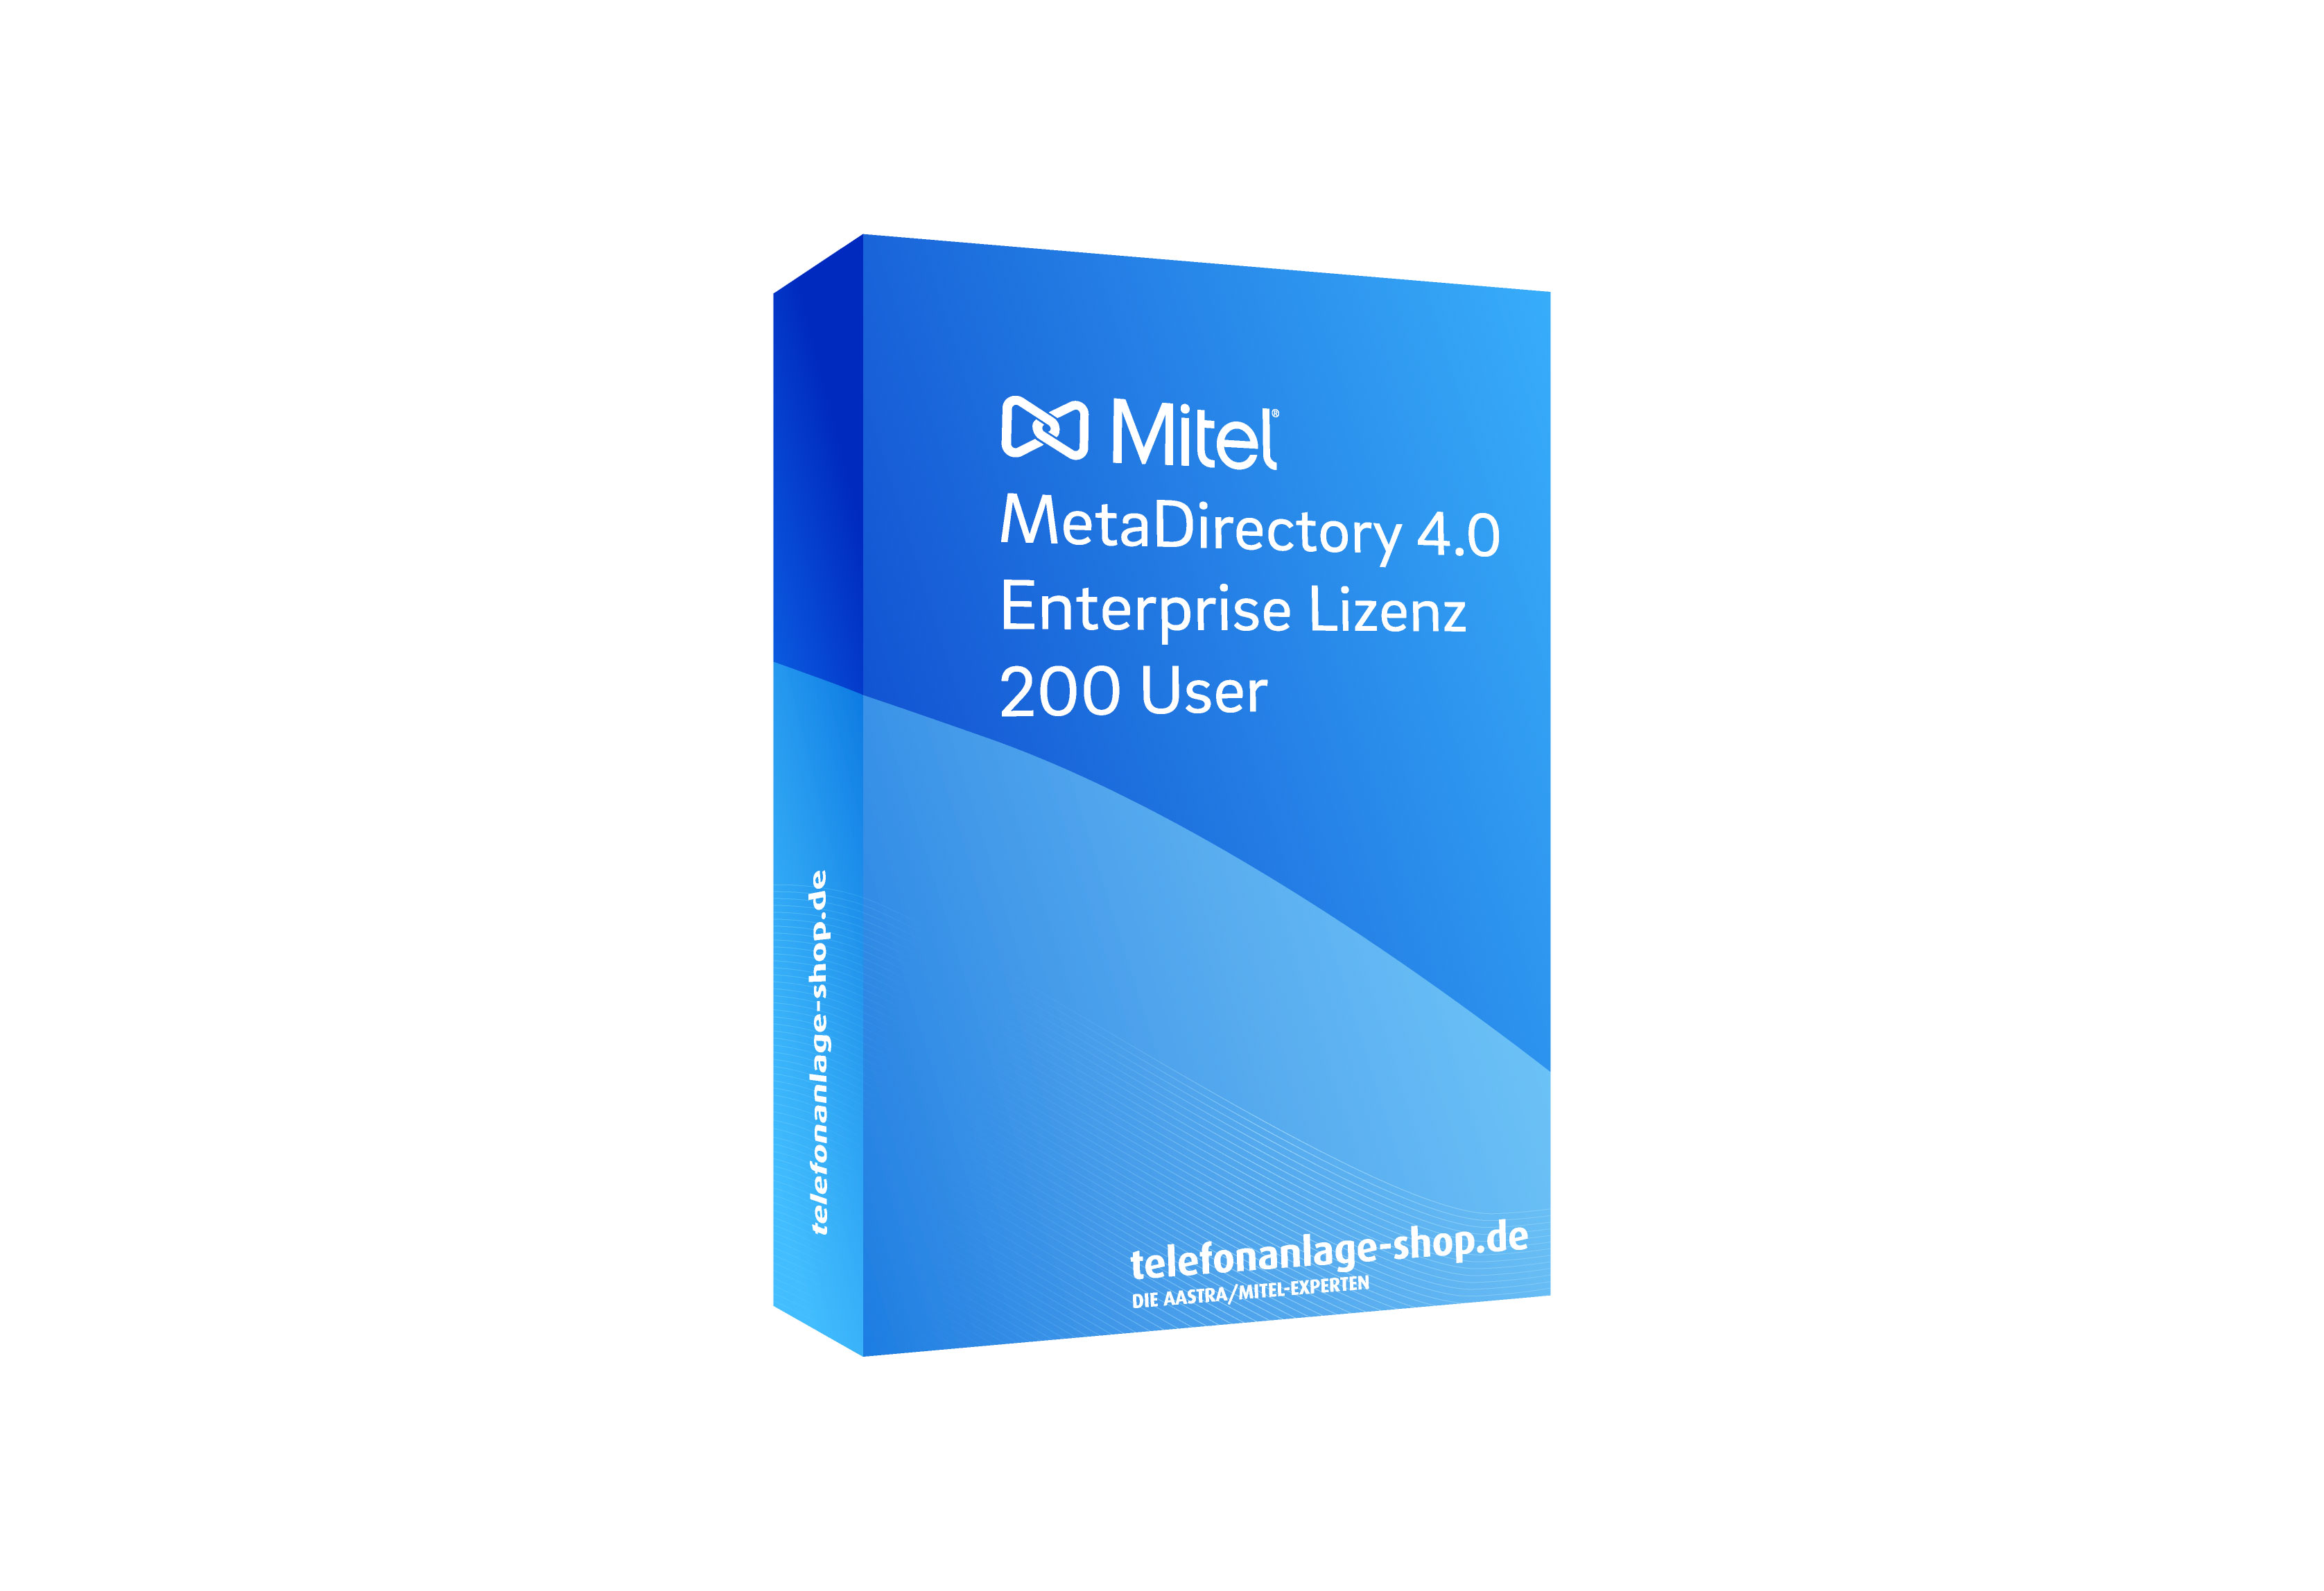 Produktbild - Mitel MetaDirectory 4.0 Enterprise Lizenz 200 User